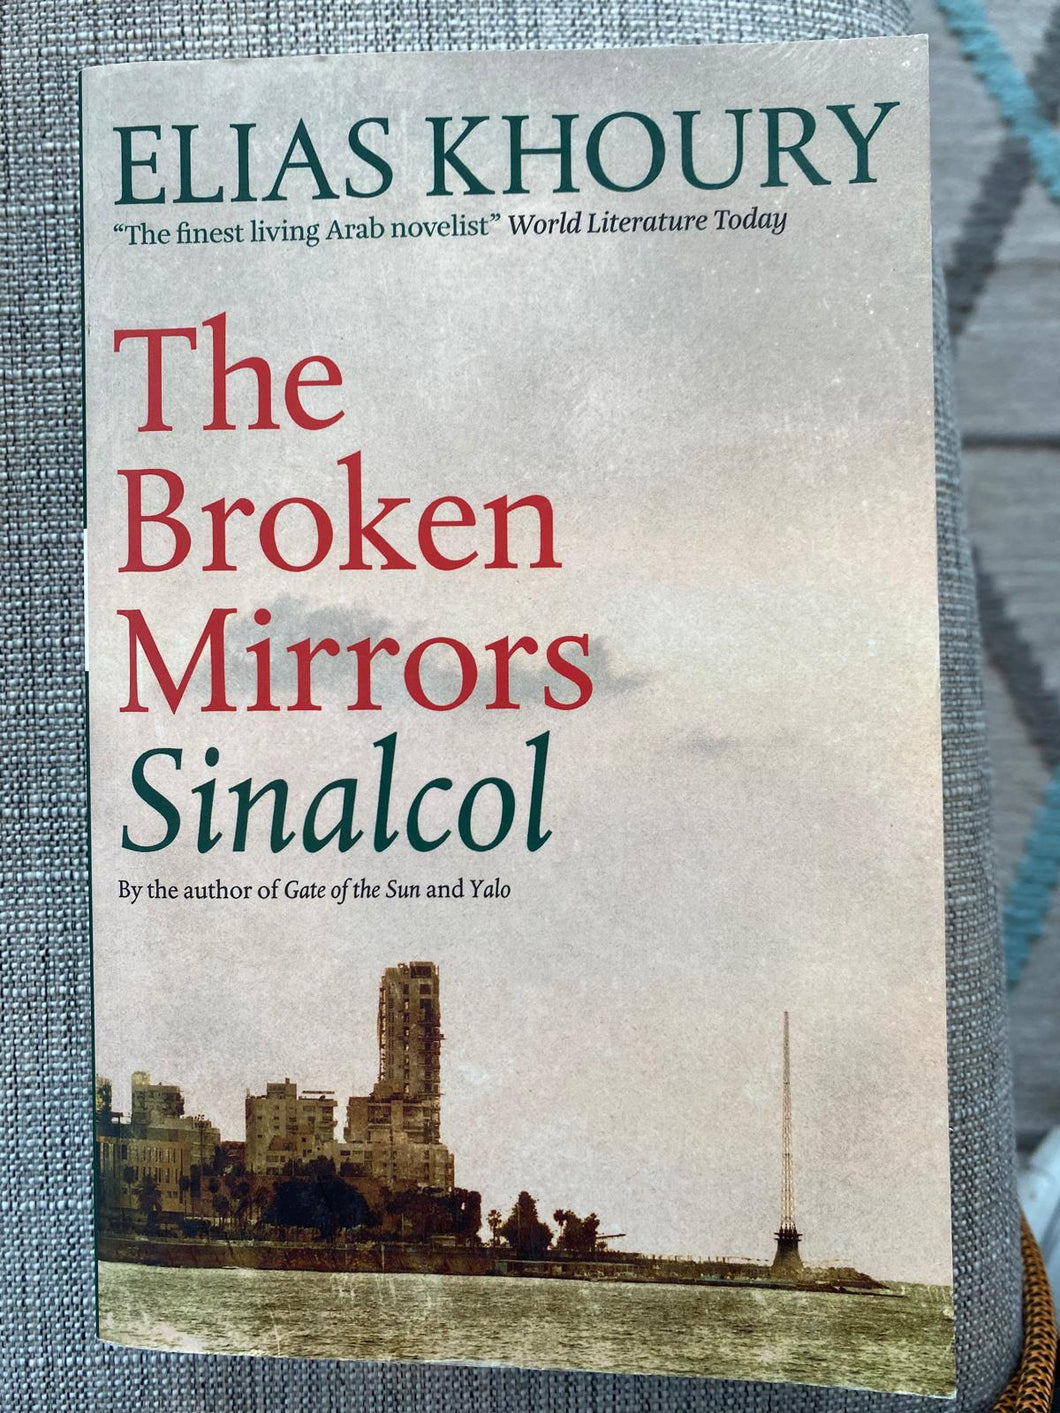 The Broken Mirrors Sinalcol - Elias Khoury